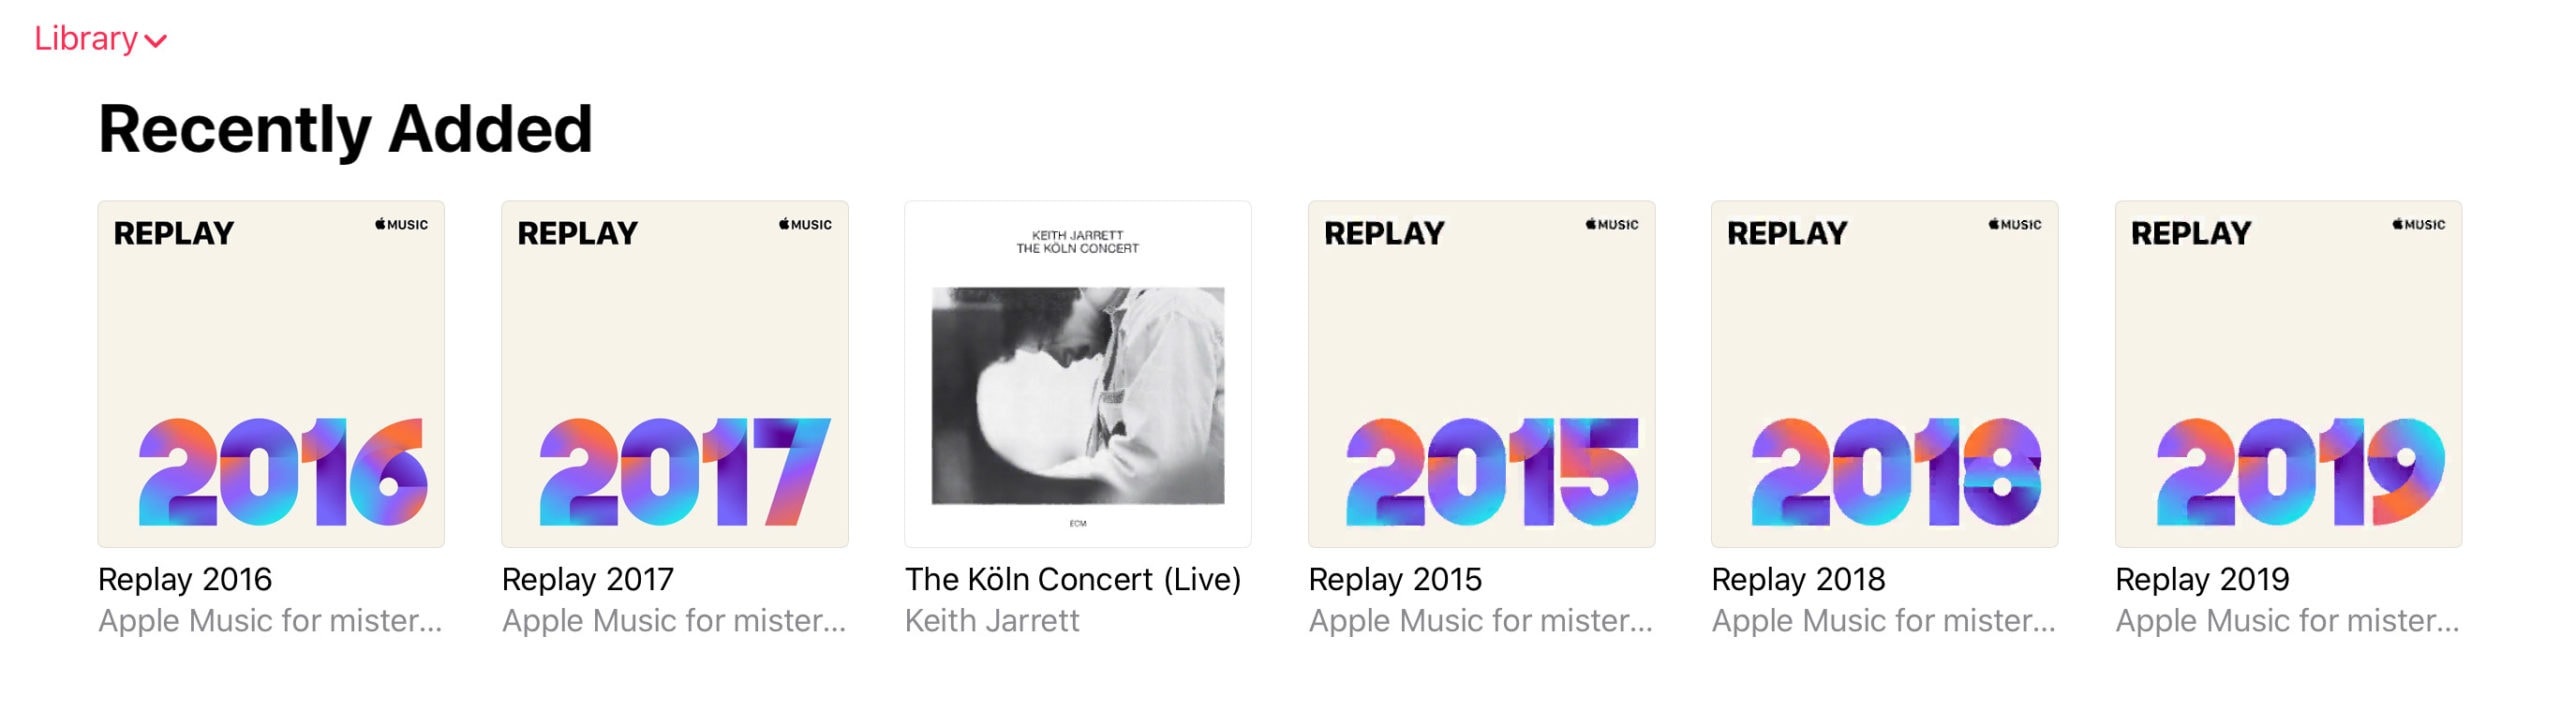 Playlists stretching back to 2015.